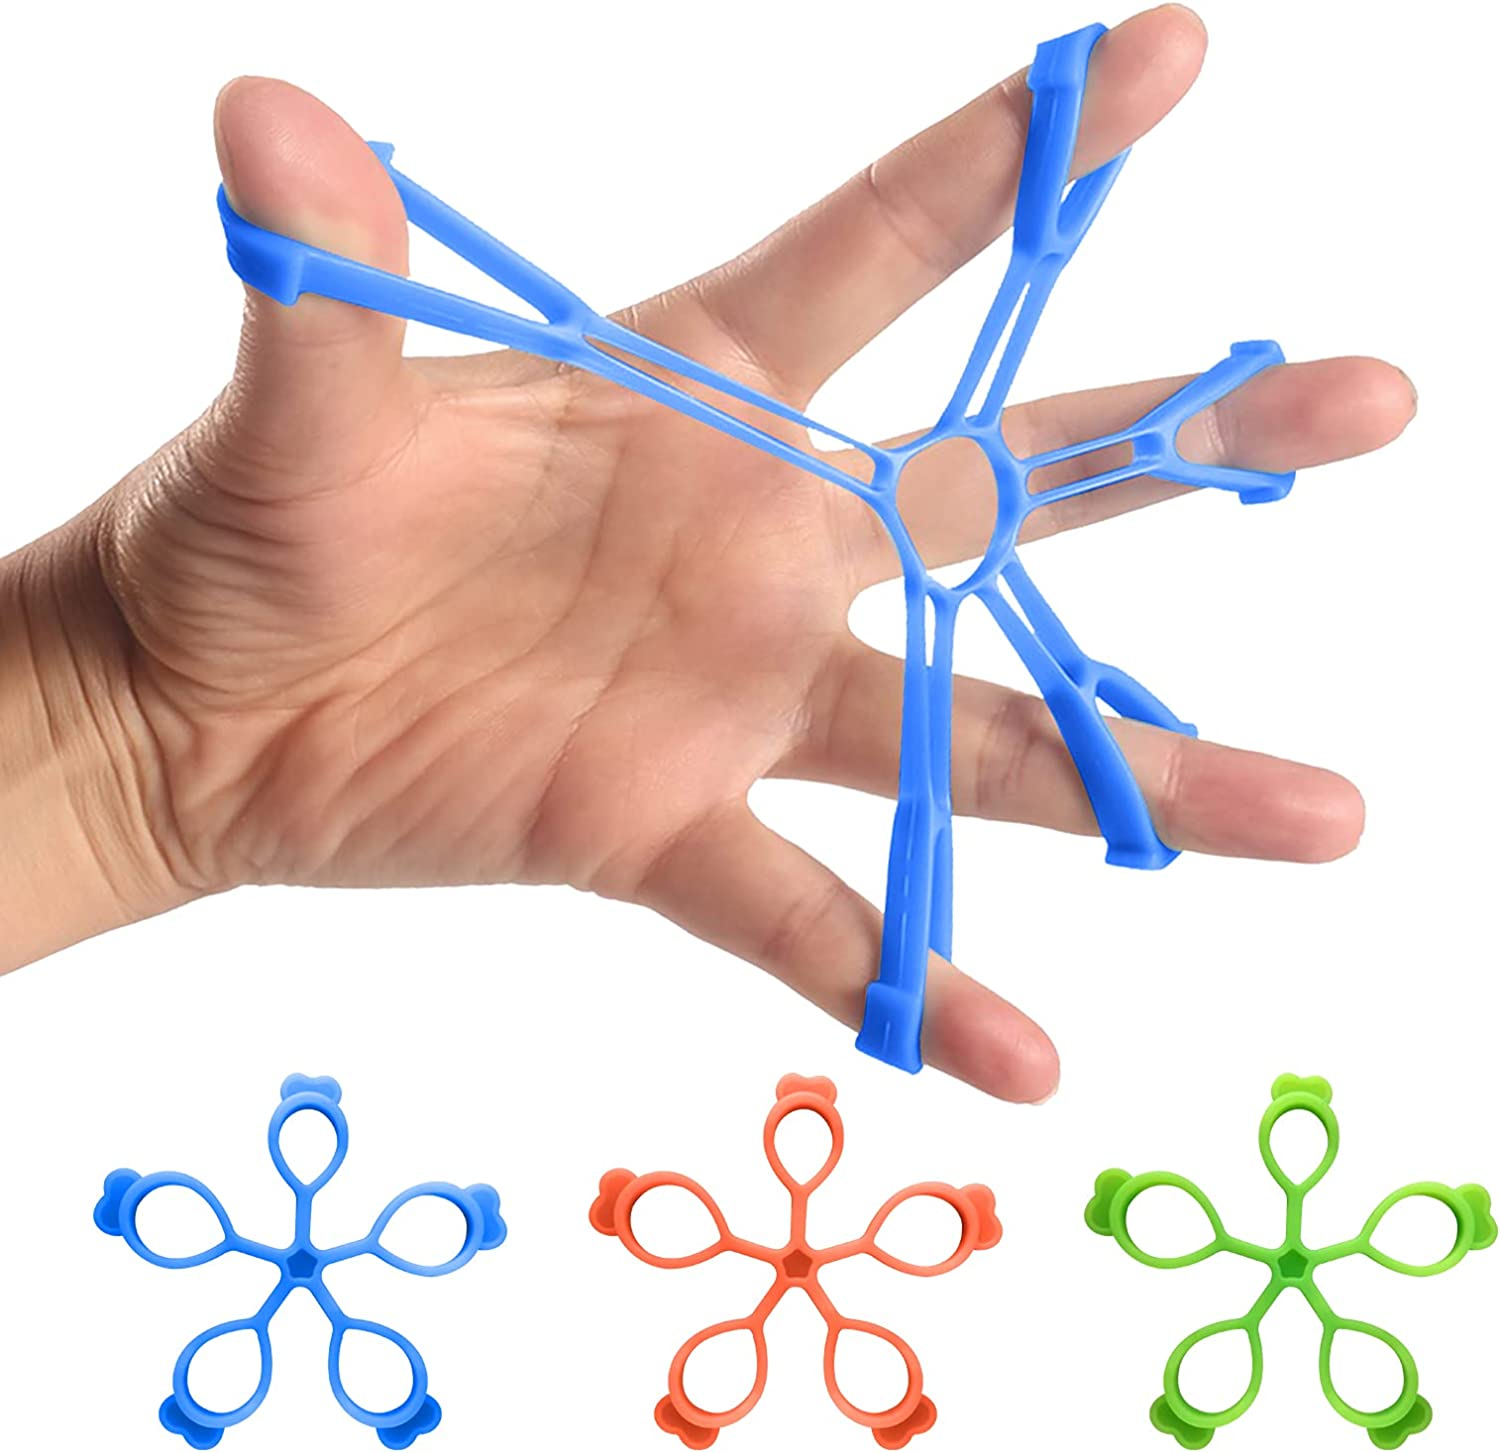 Sales for sale 6 PCS TunTenDo Hand Grip Many popular brands Exerci Finger Extension Strengthener